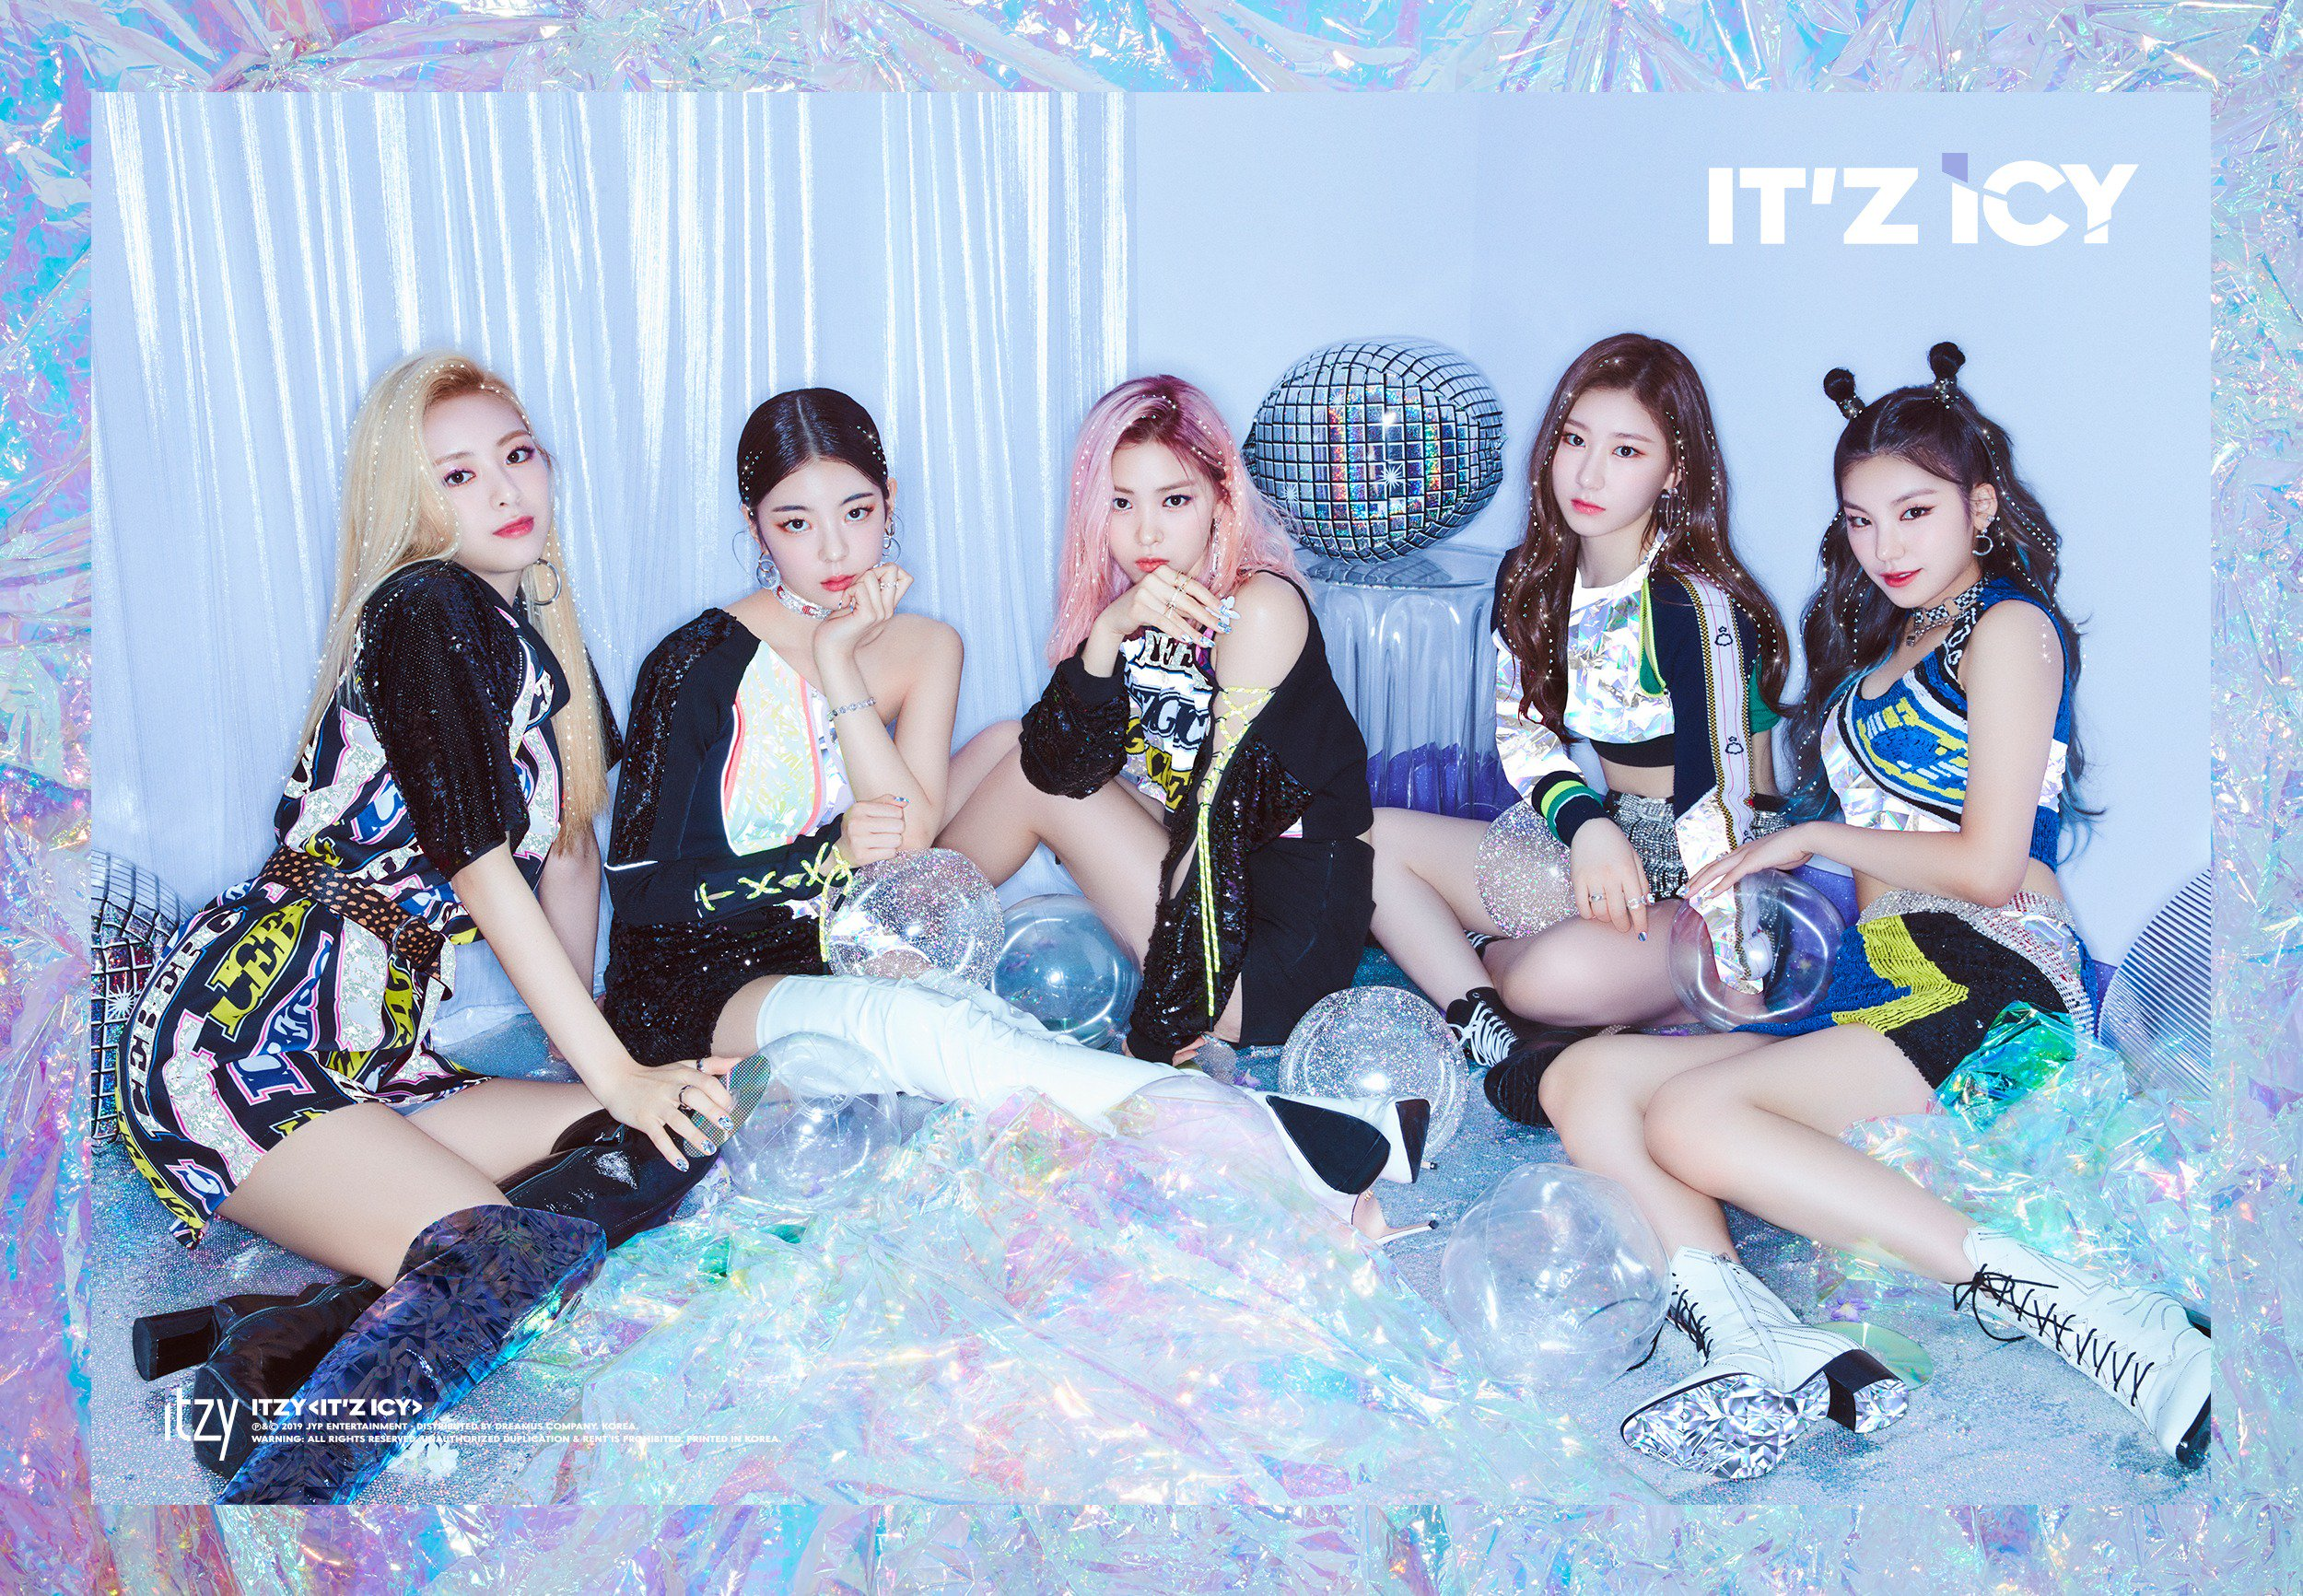 ITZY it'z Icy Teaser